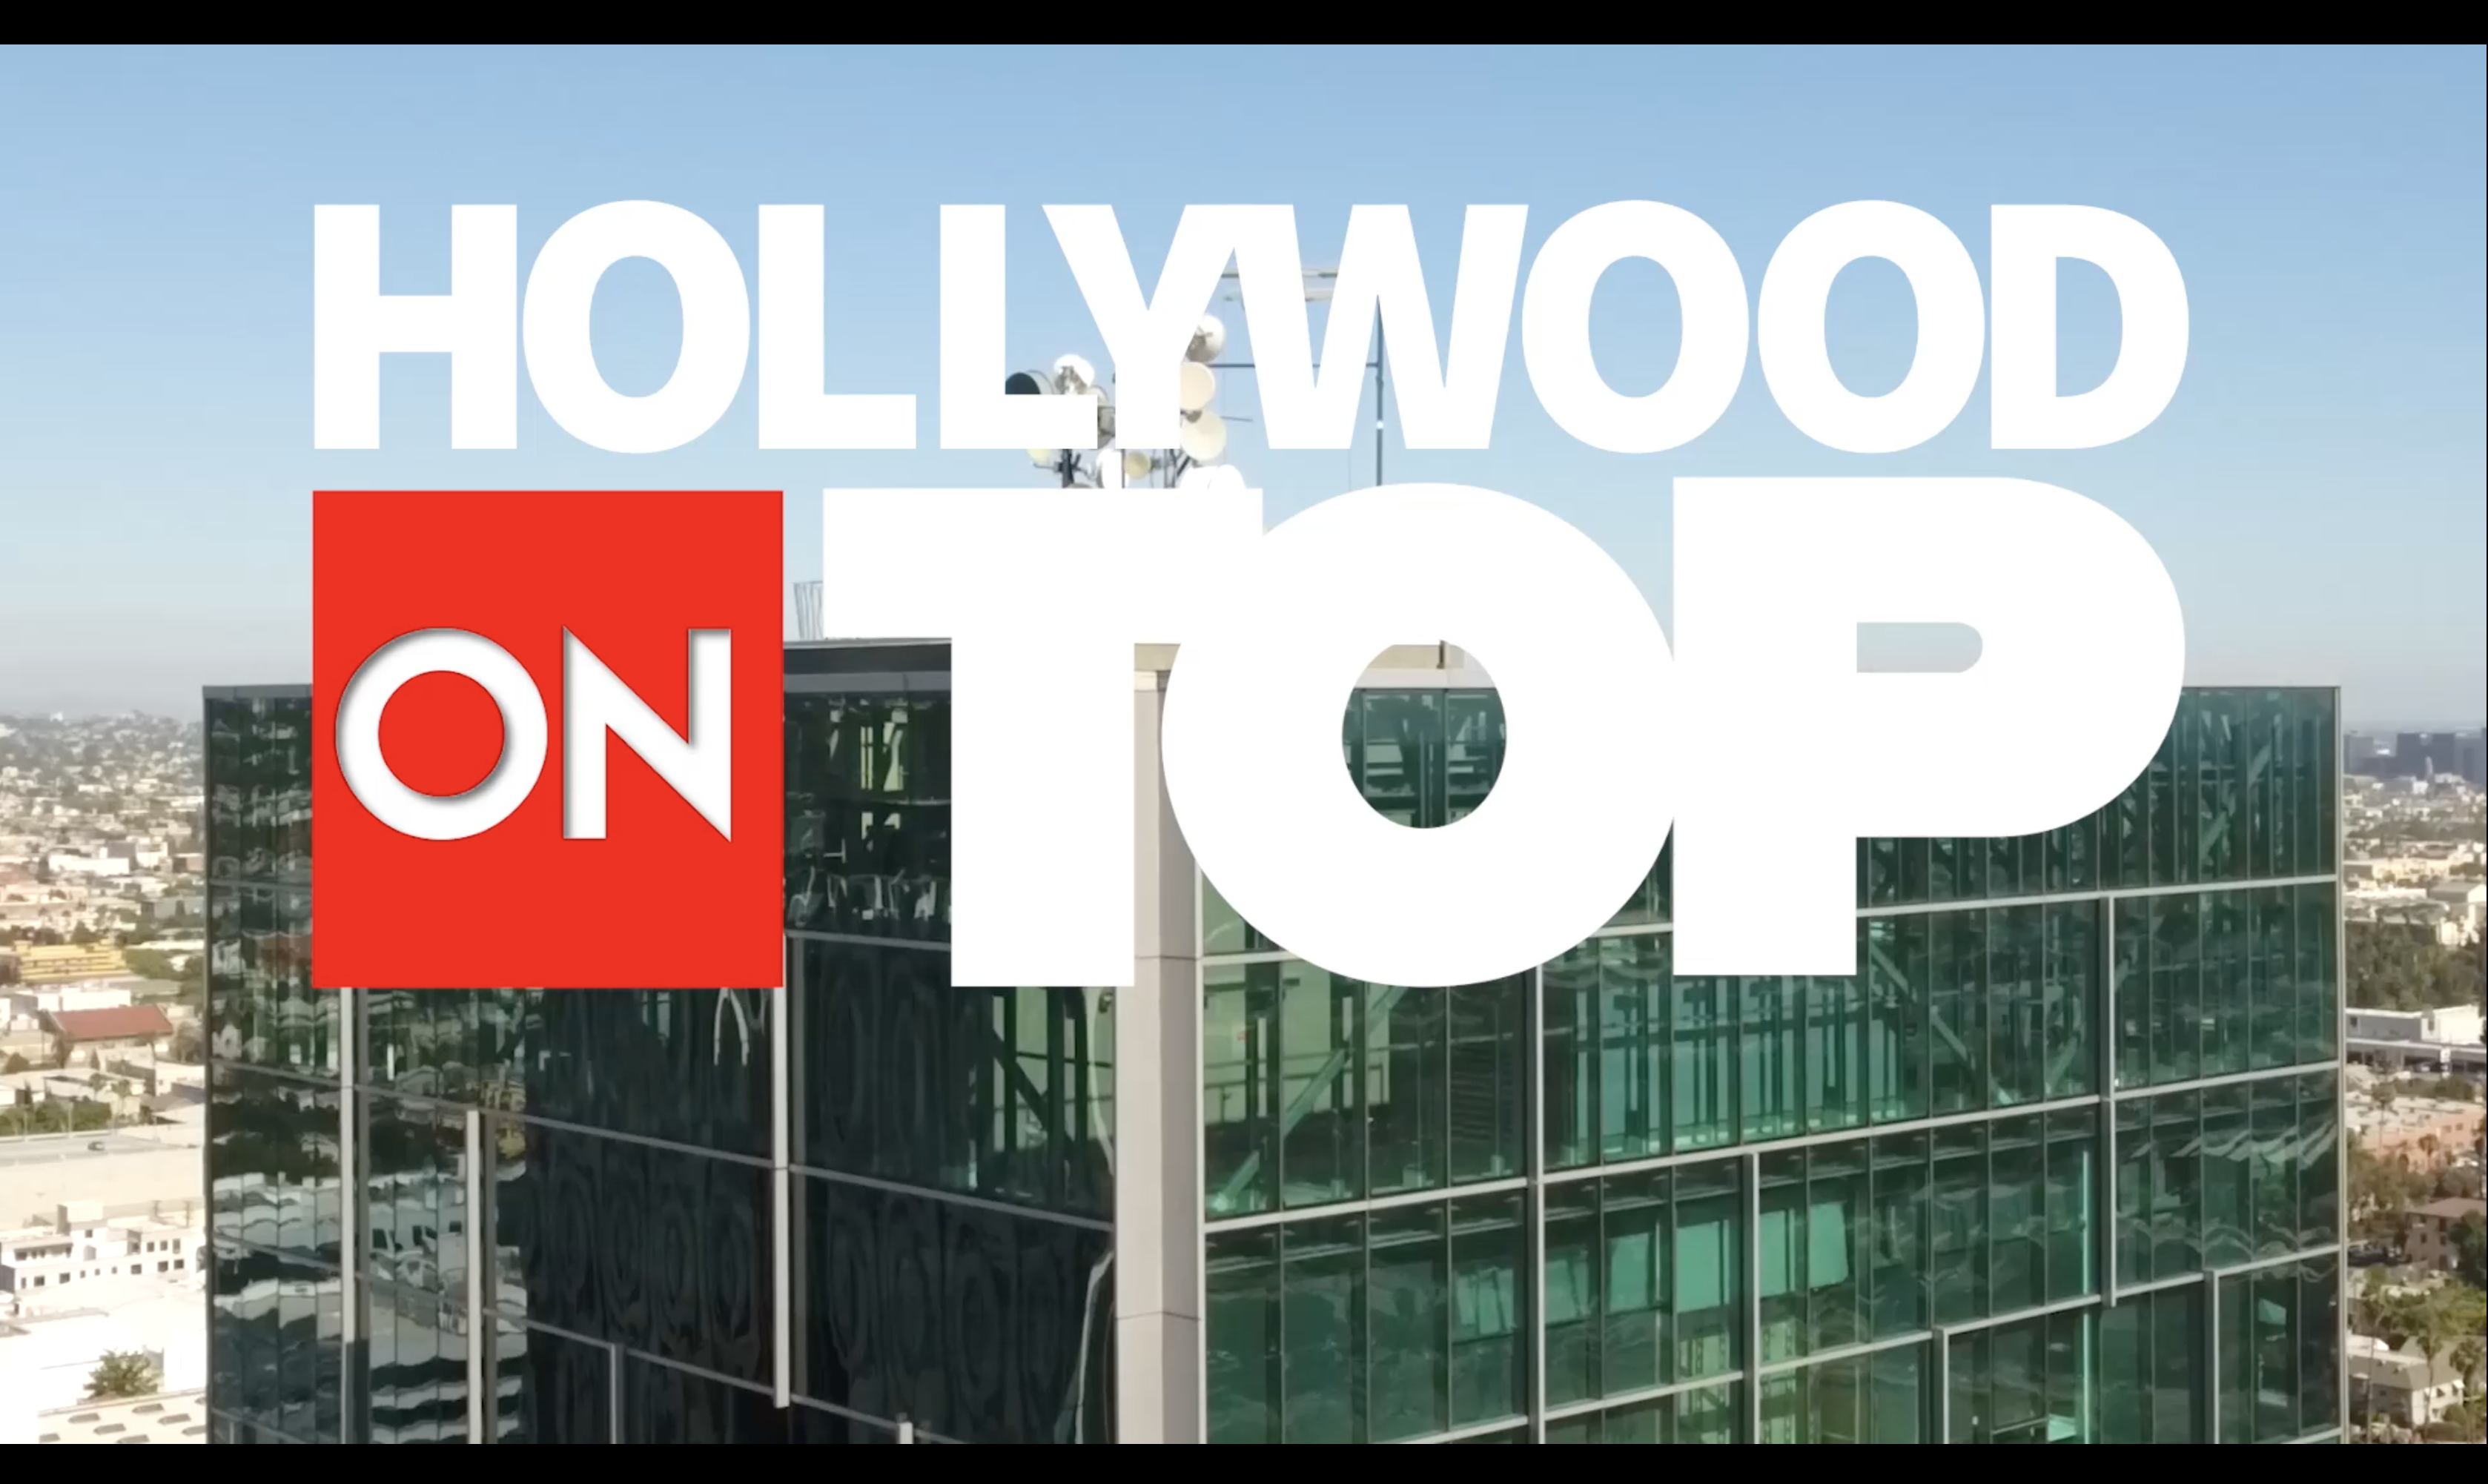 HOLLYWOOD ON TOP